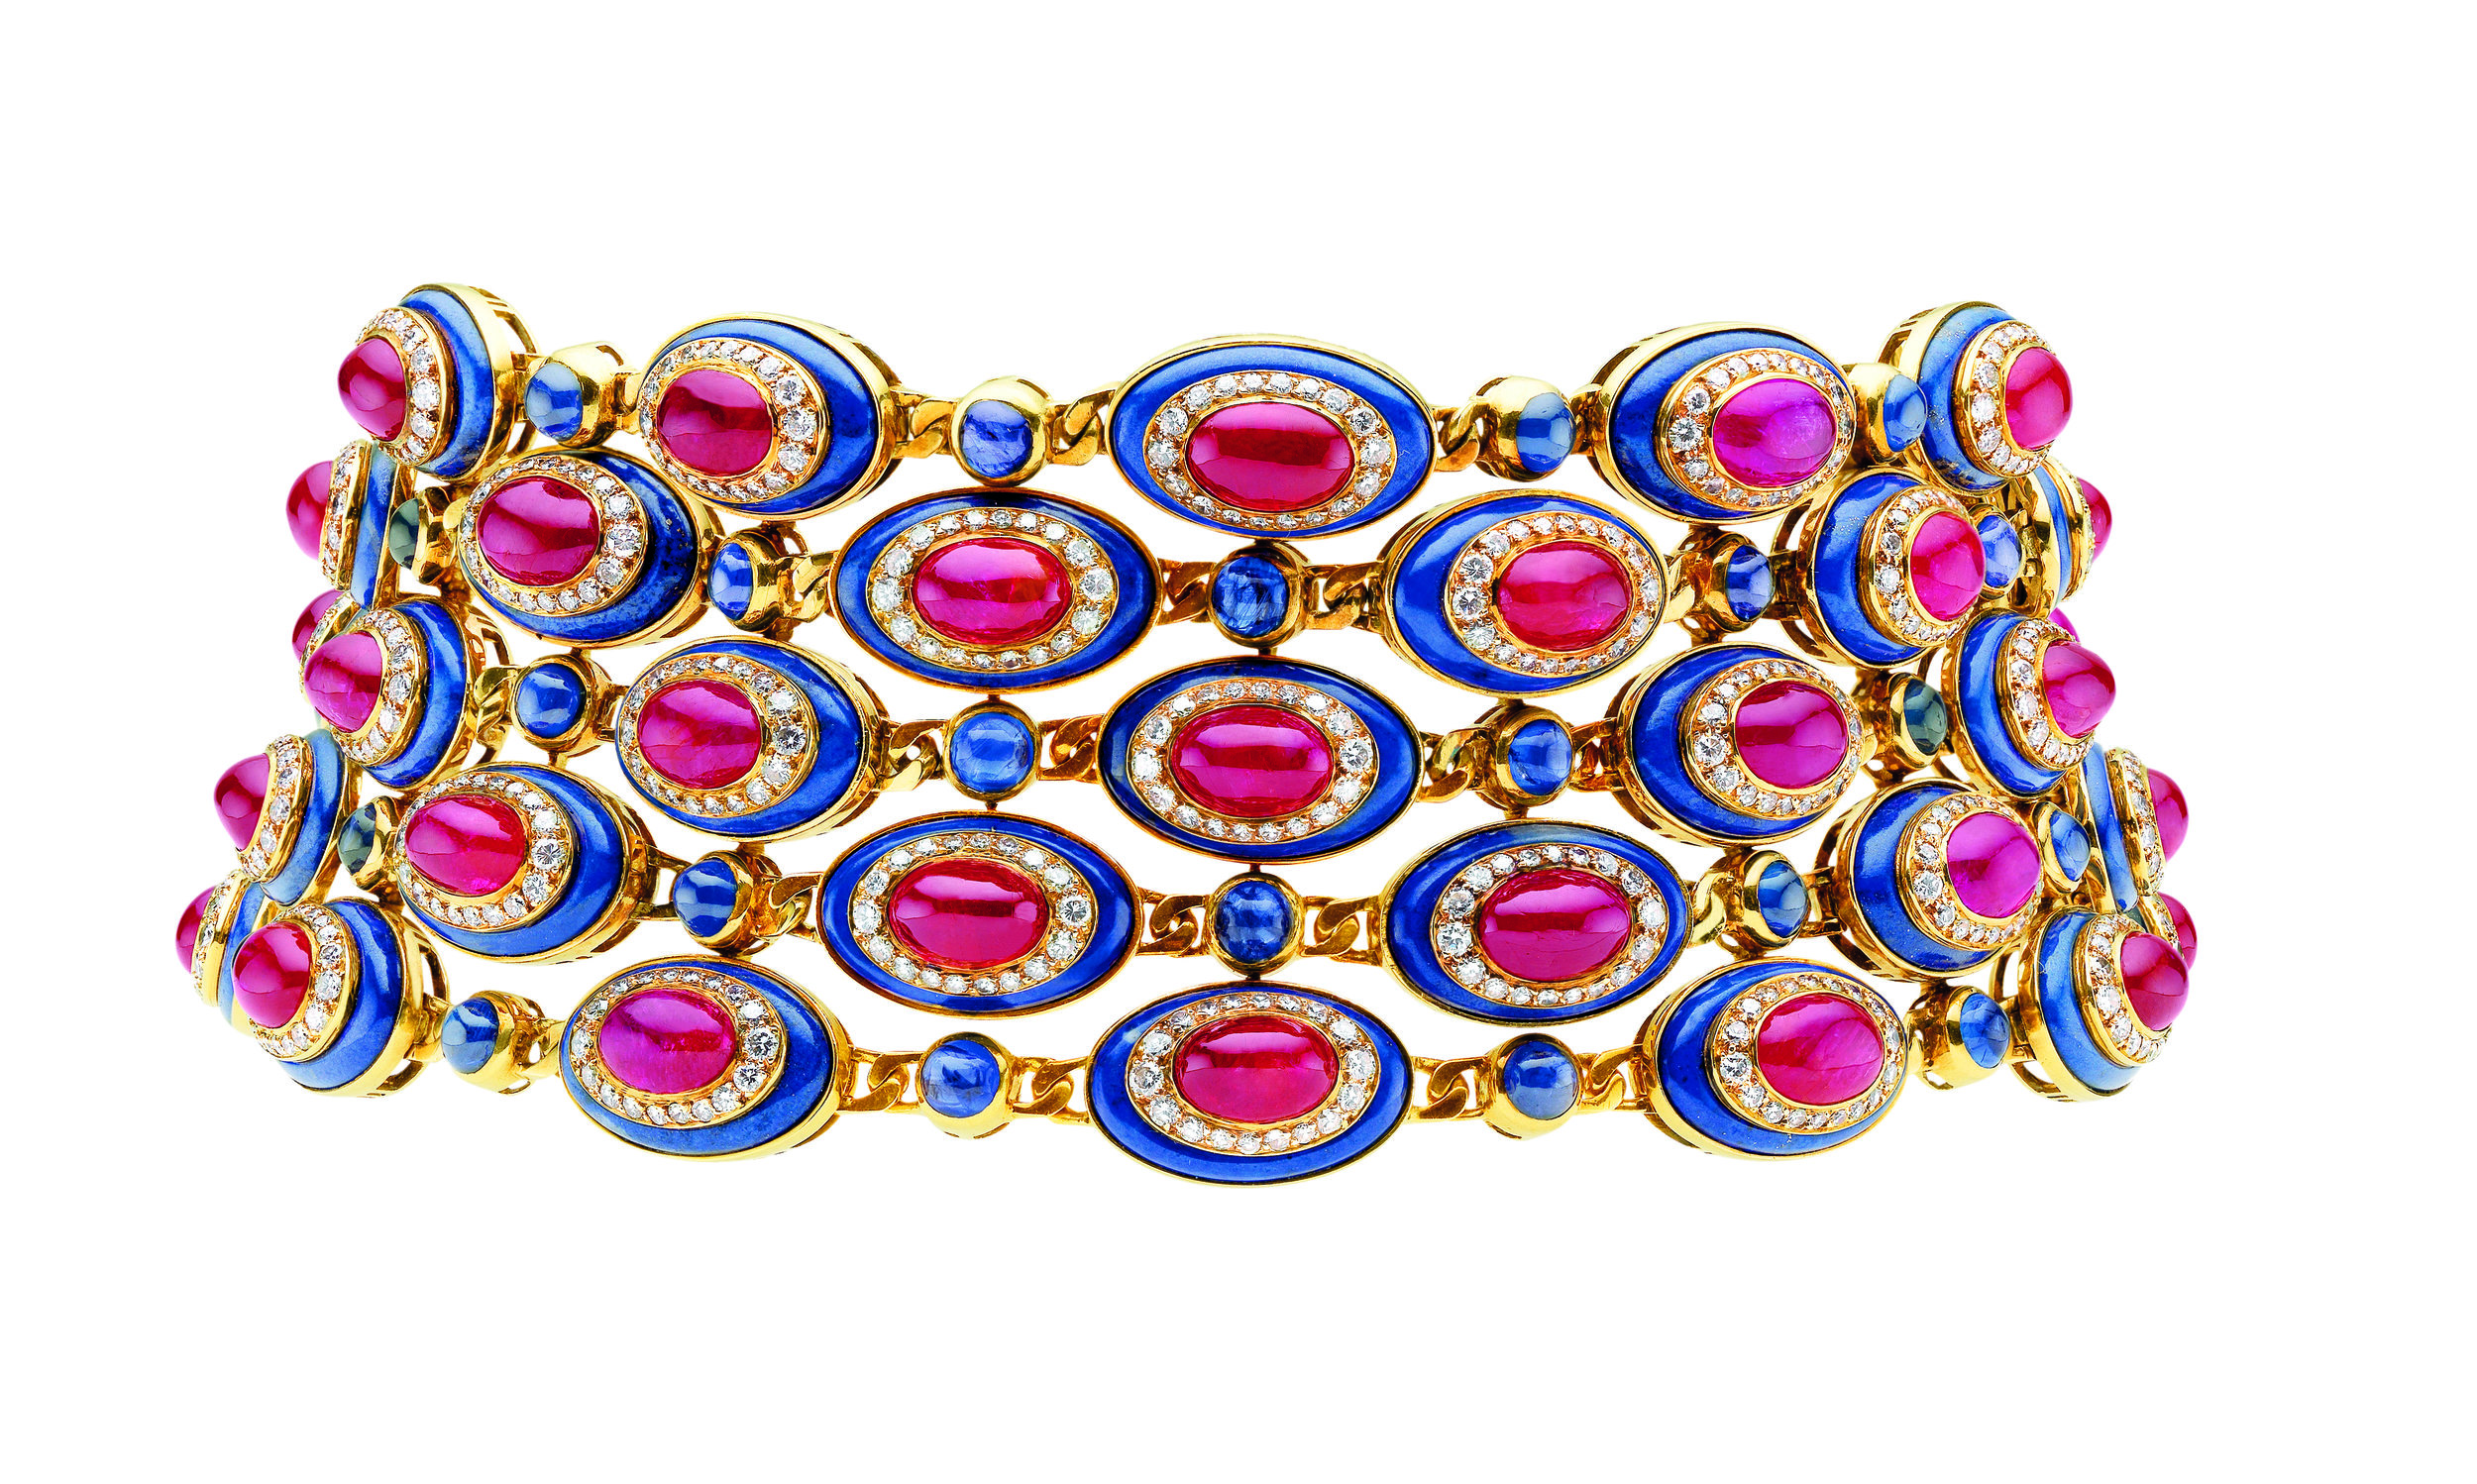 1979 choker by Bulgari with oval medallions of concentric cabochon rubies_© Bulgari_from RUBY_published 2017.jpg